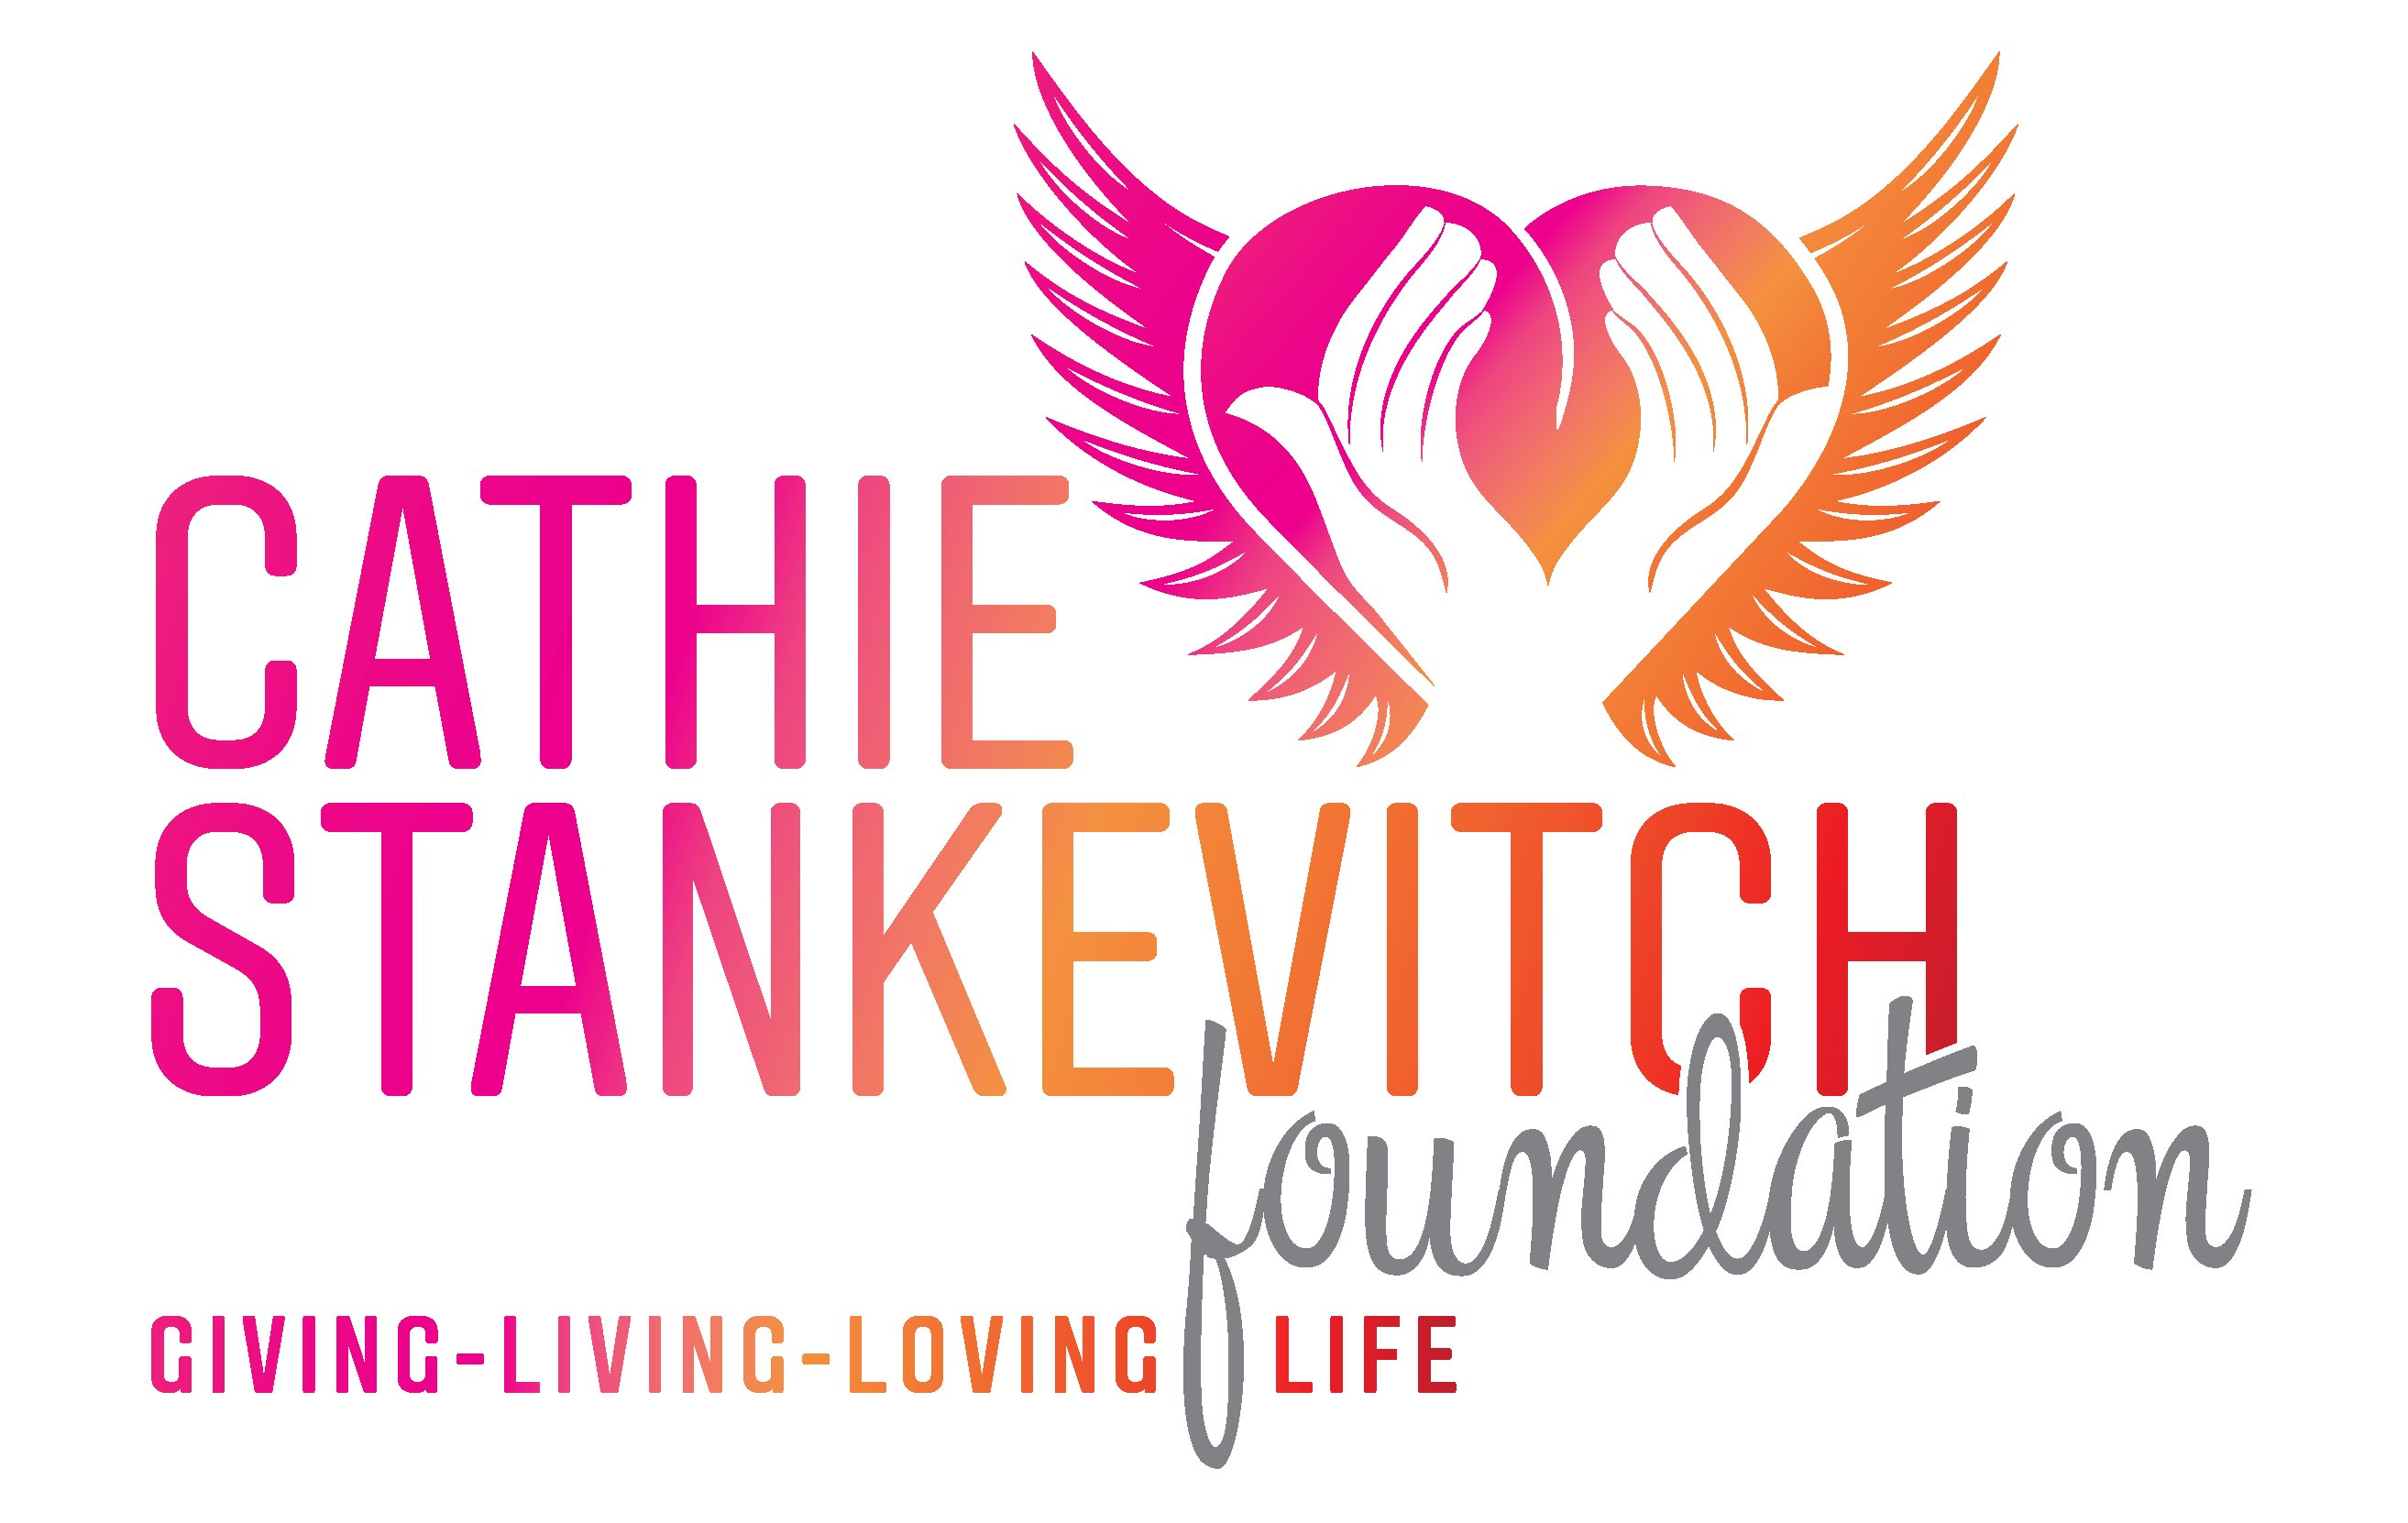 Cathie Stankevitch Foundation